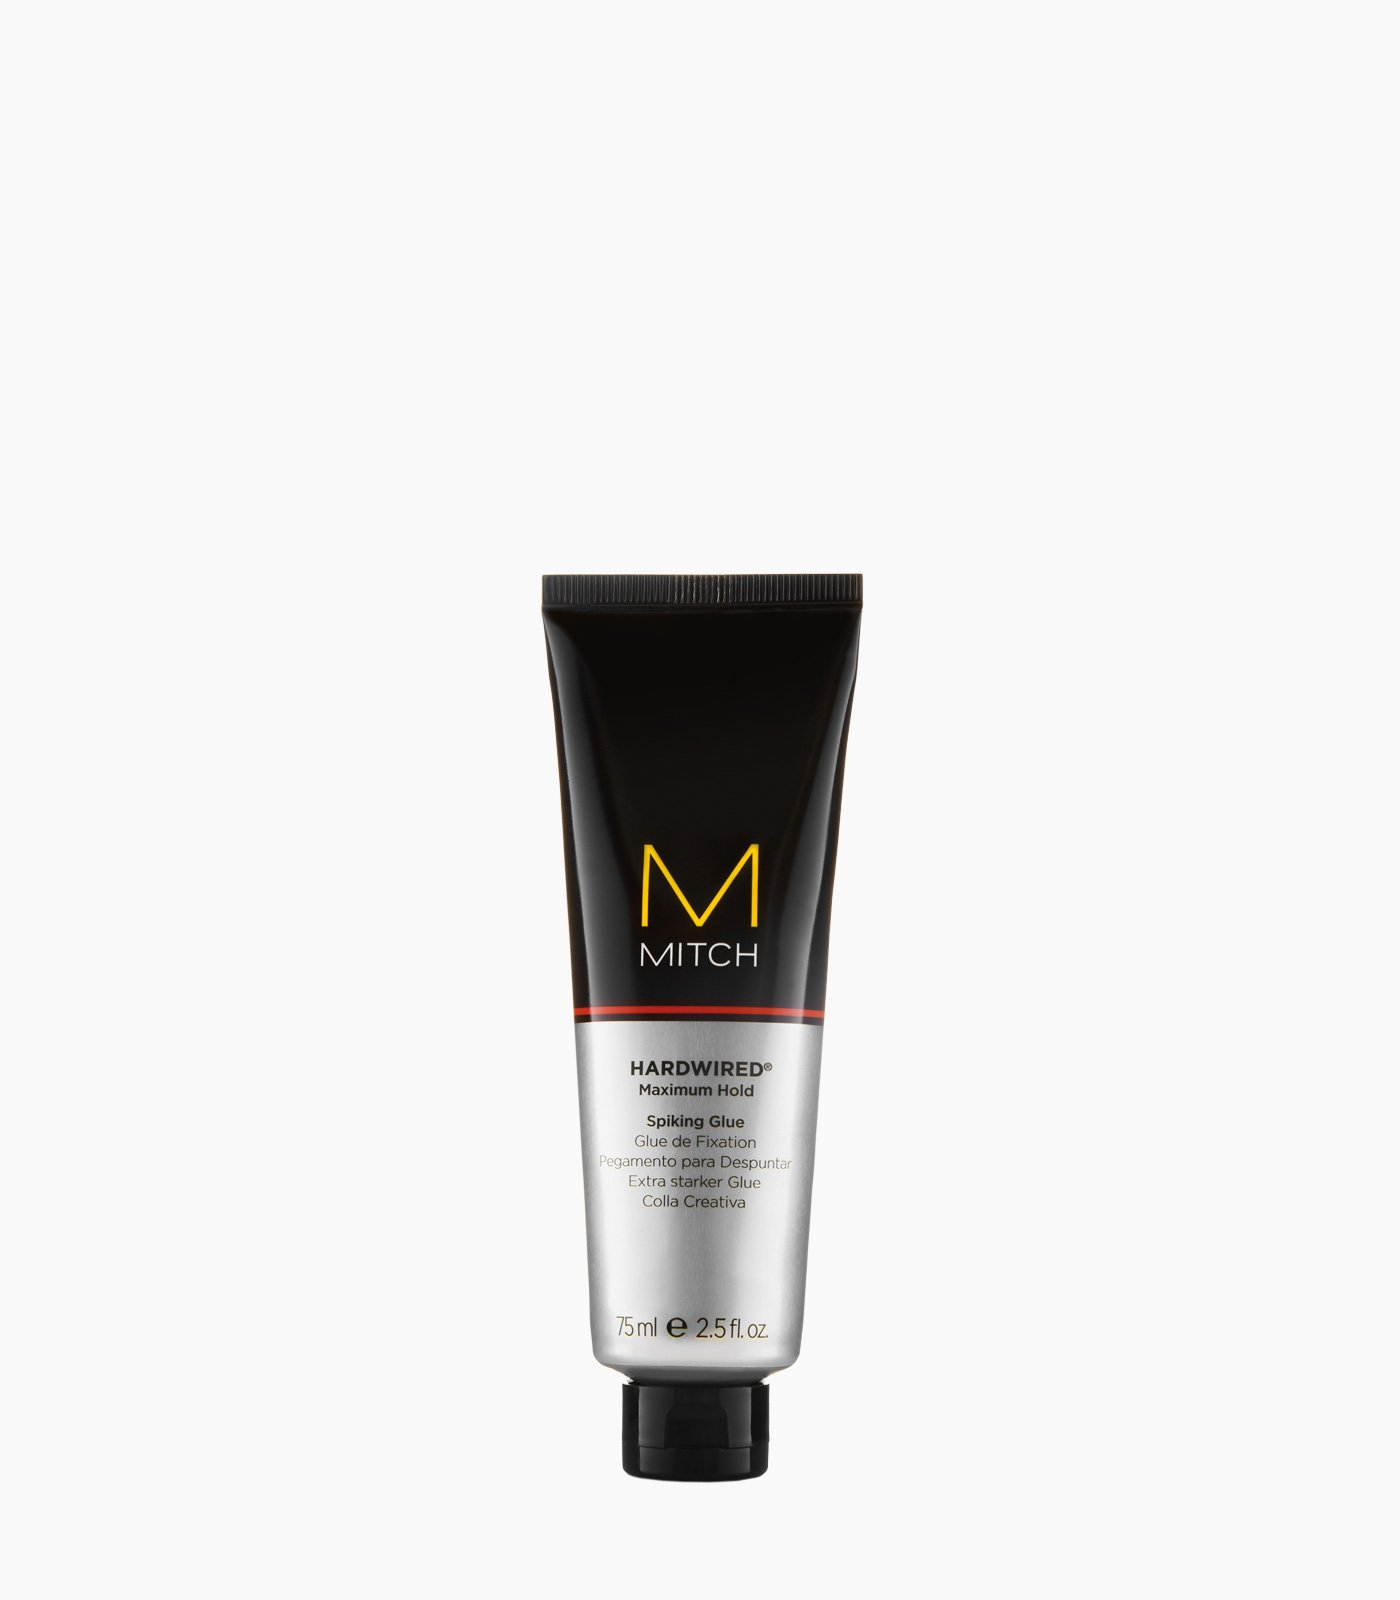 PAUL MITCHELL CLEAN BEAUTY MITCH Hardwired 75 ml